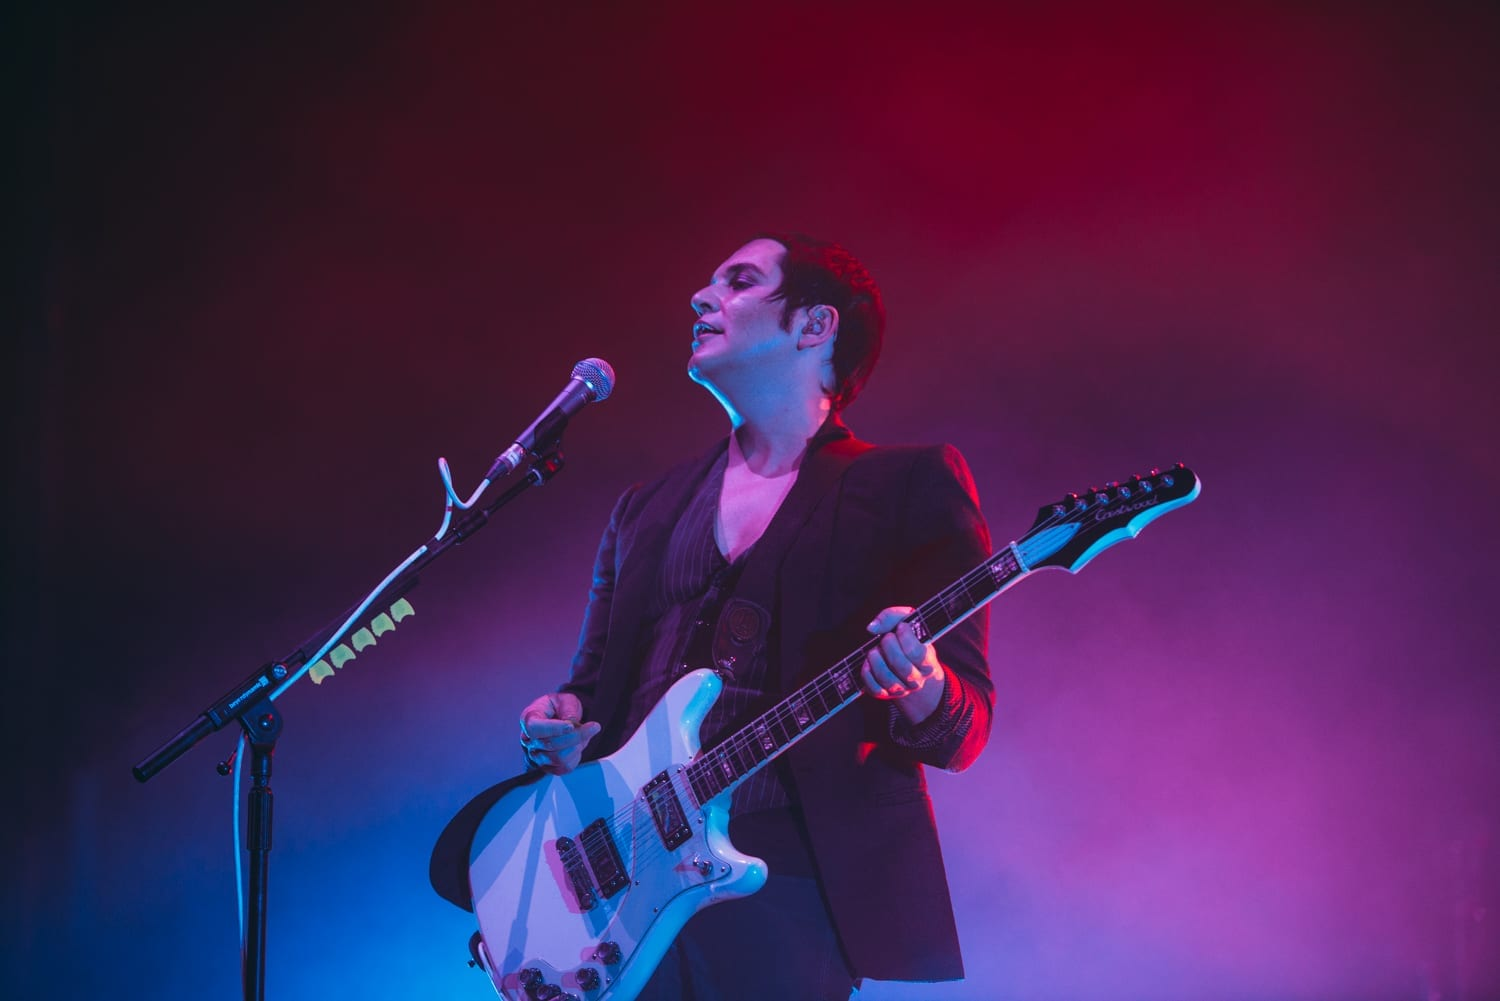 Gallery: Placebo // SSE Arena Wembley, London – 15.12.16